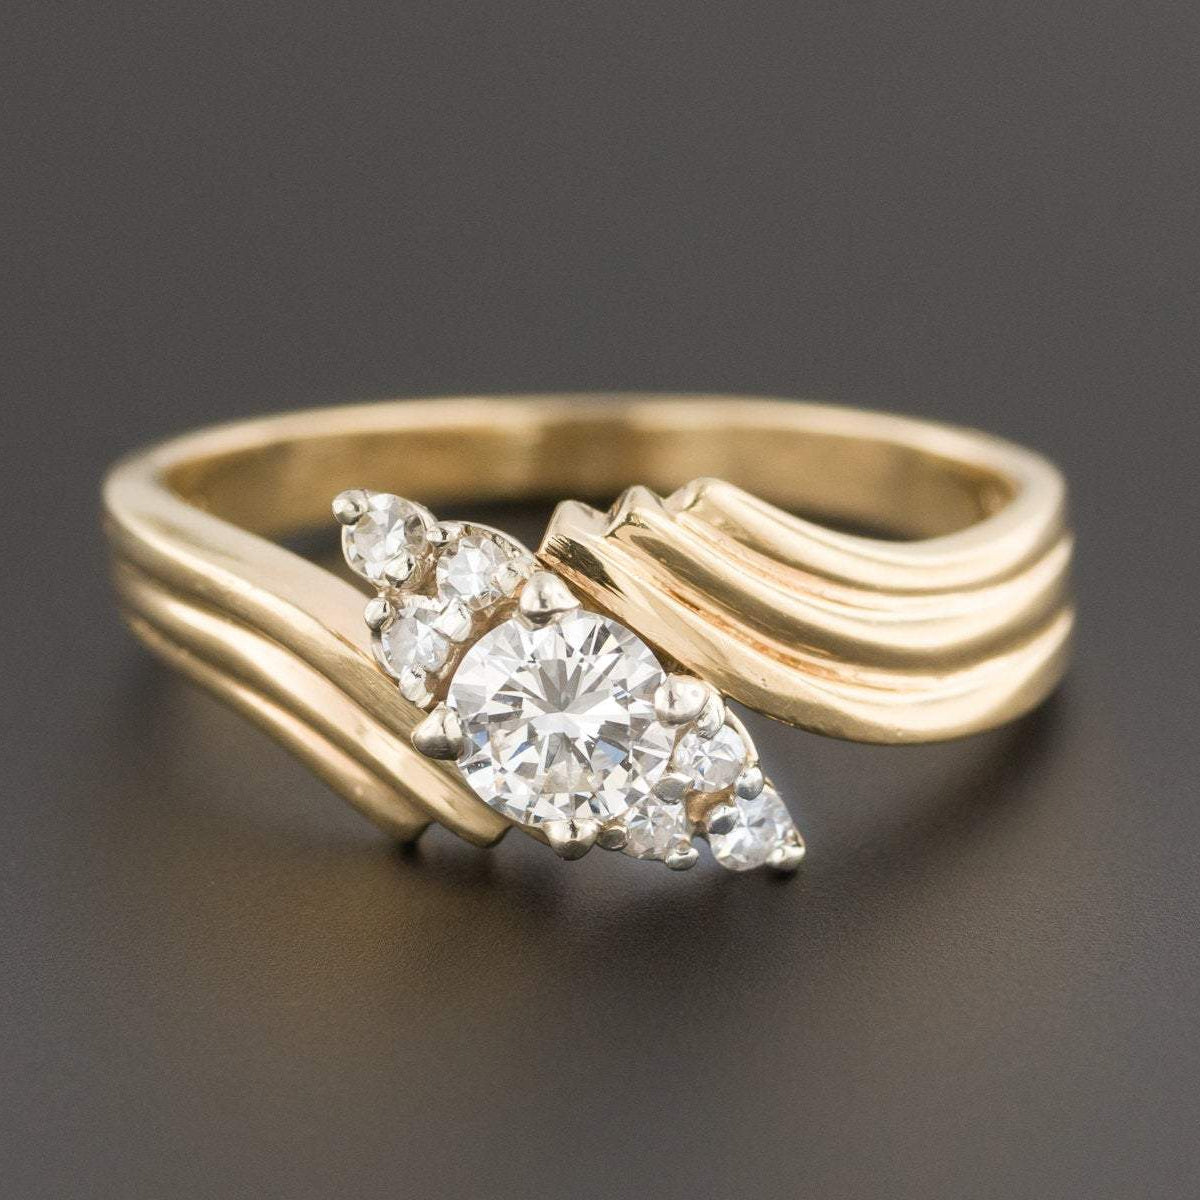 Engagement Ring | Vintage Diamond Ring | Vintage Engagement Ring | 14k Gold Ring | Yellow Gold Engagement Ring | Vintage Ring